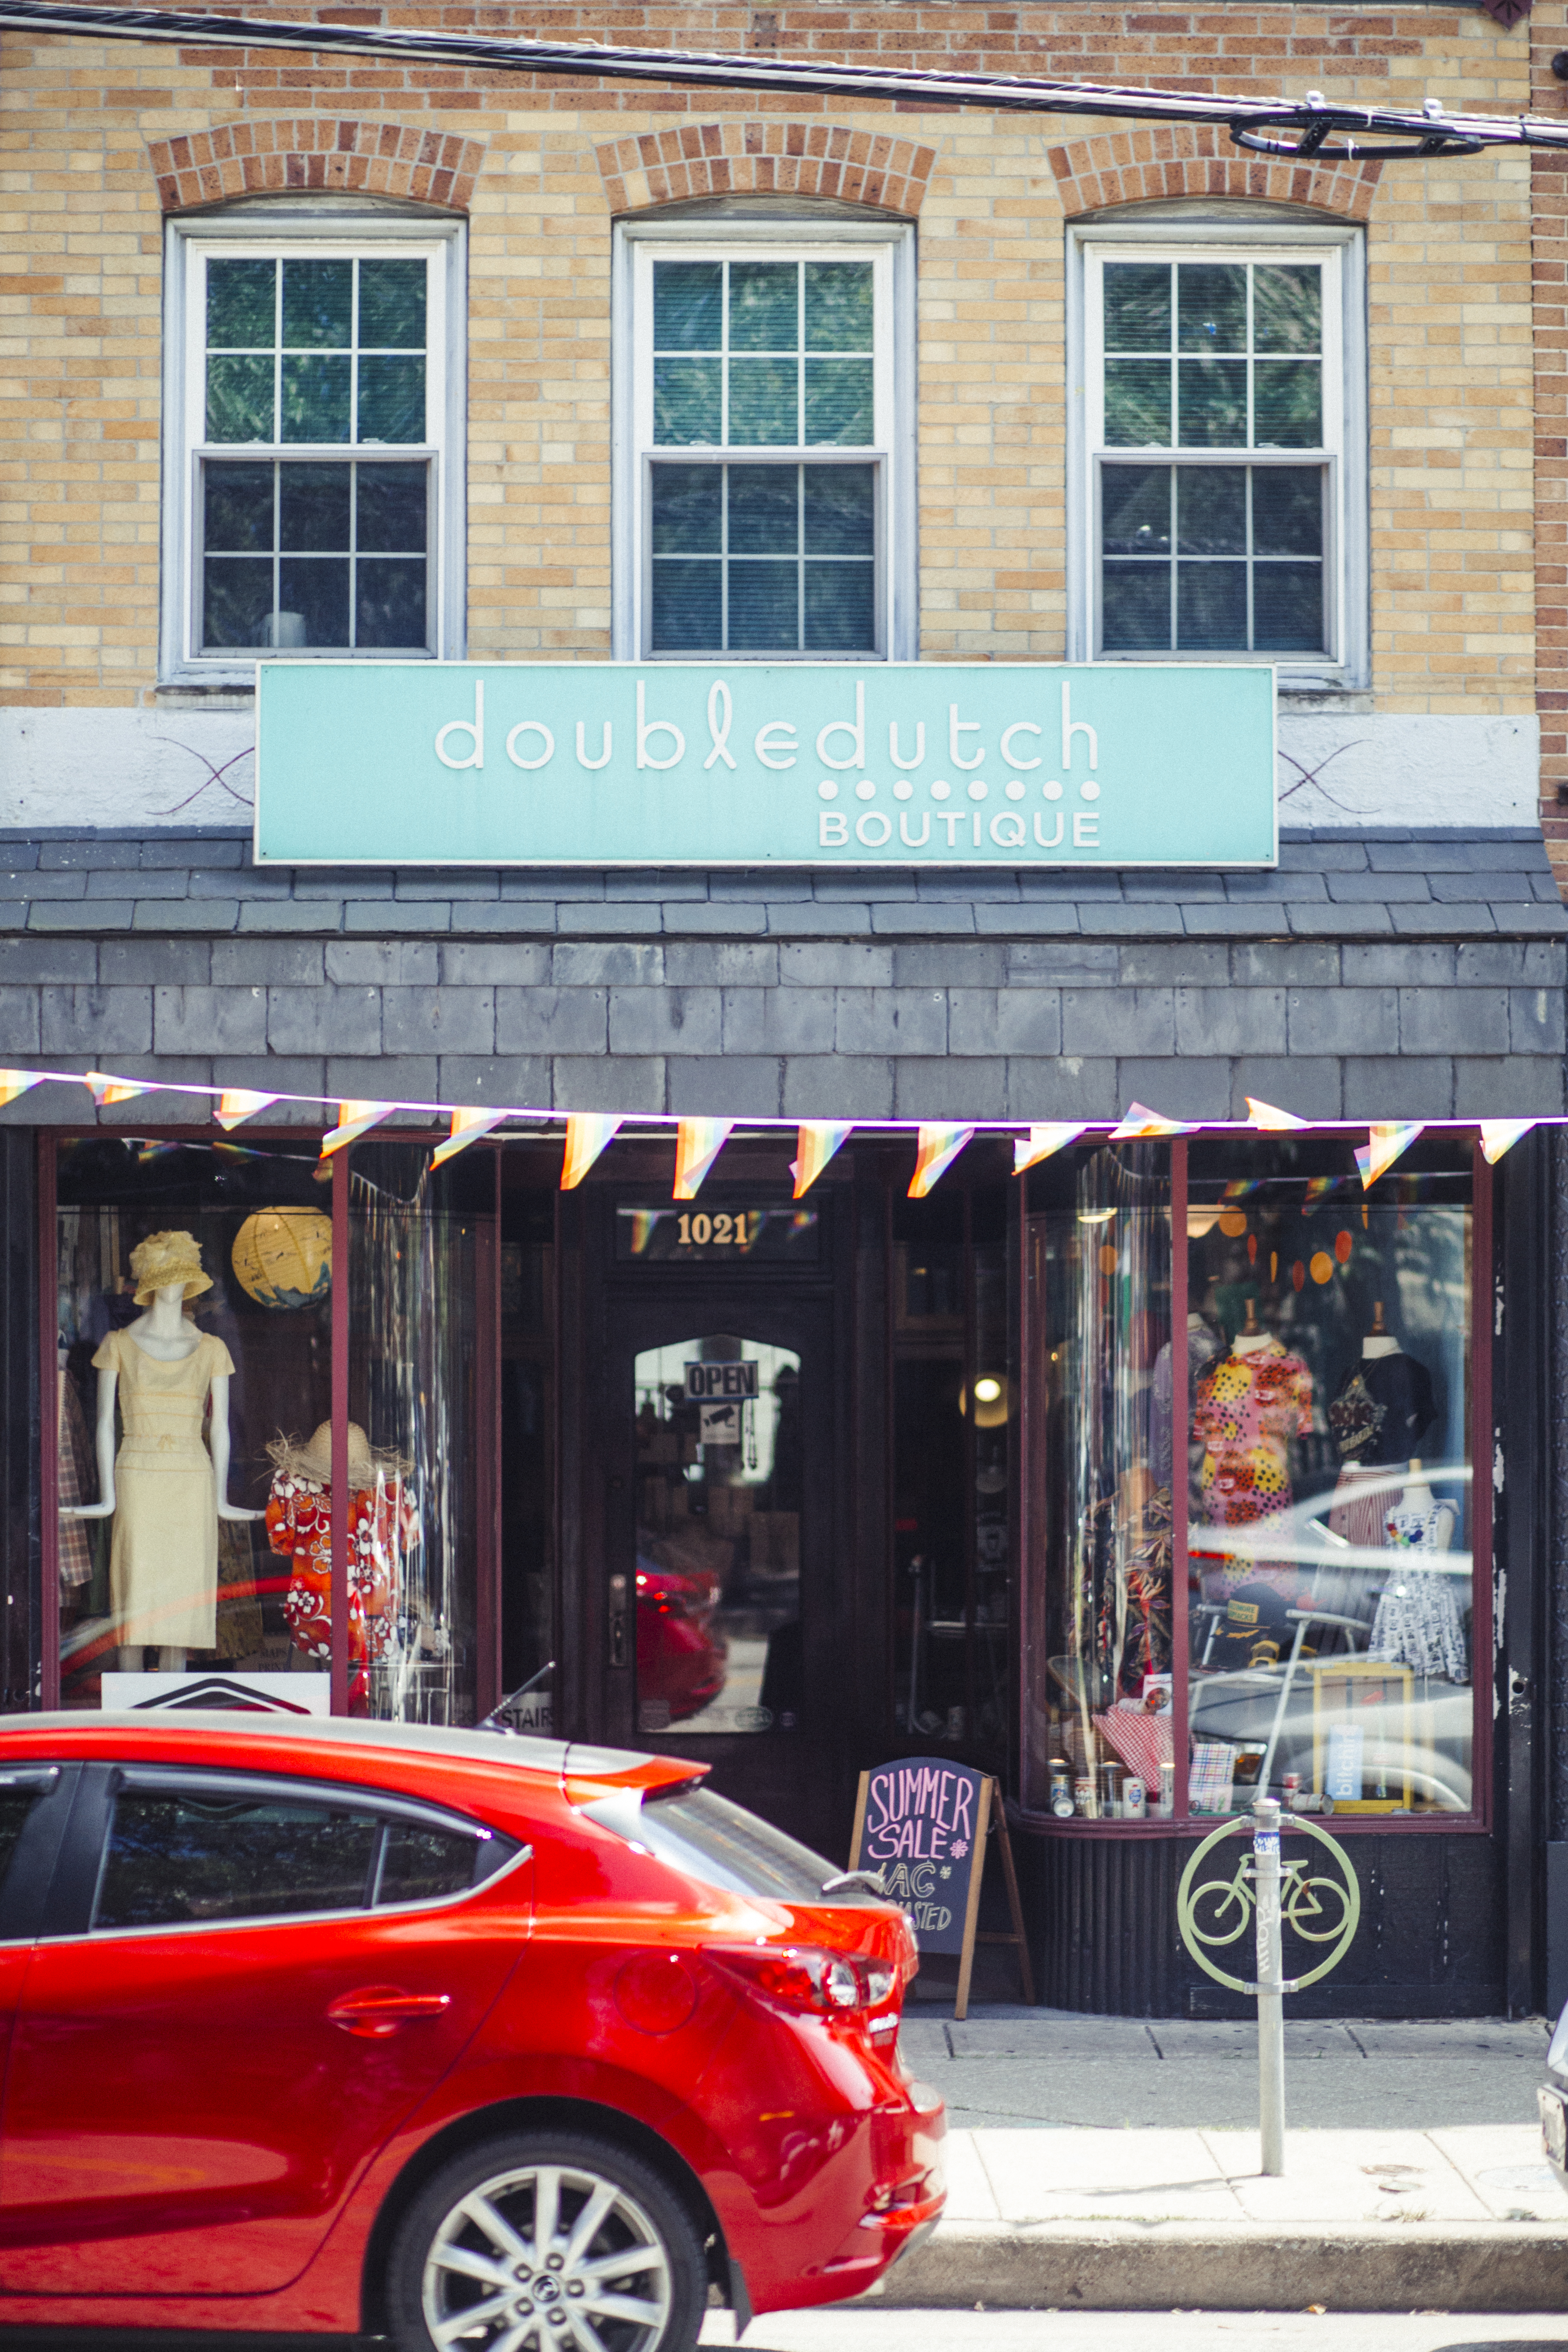 How Doubledutch Boutique is Bringing Modern Retro Flair to Baltimore